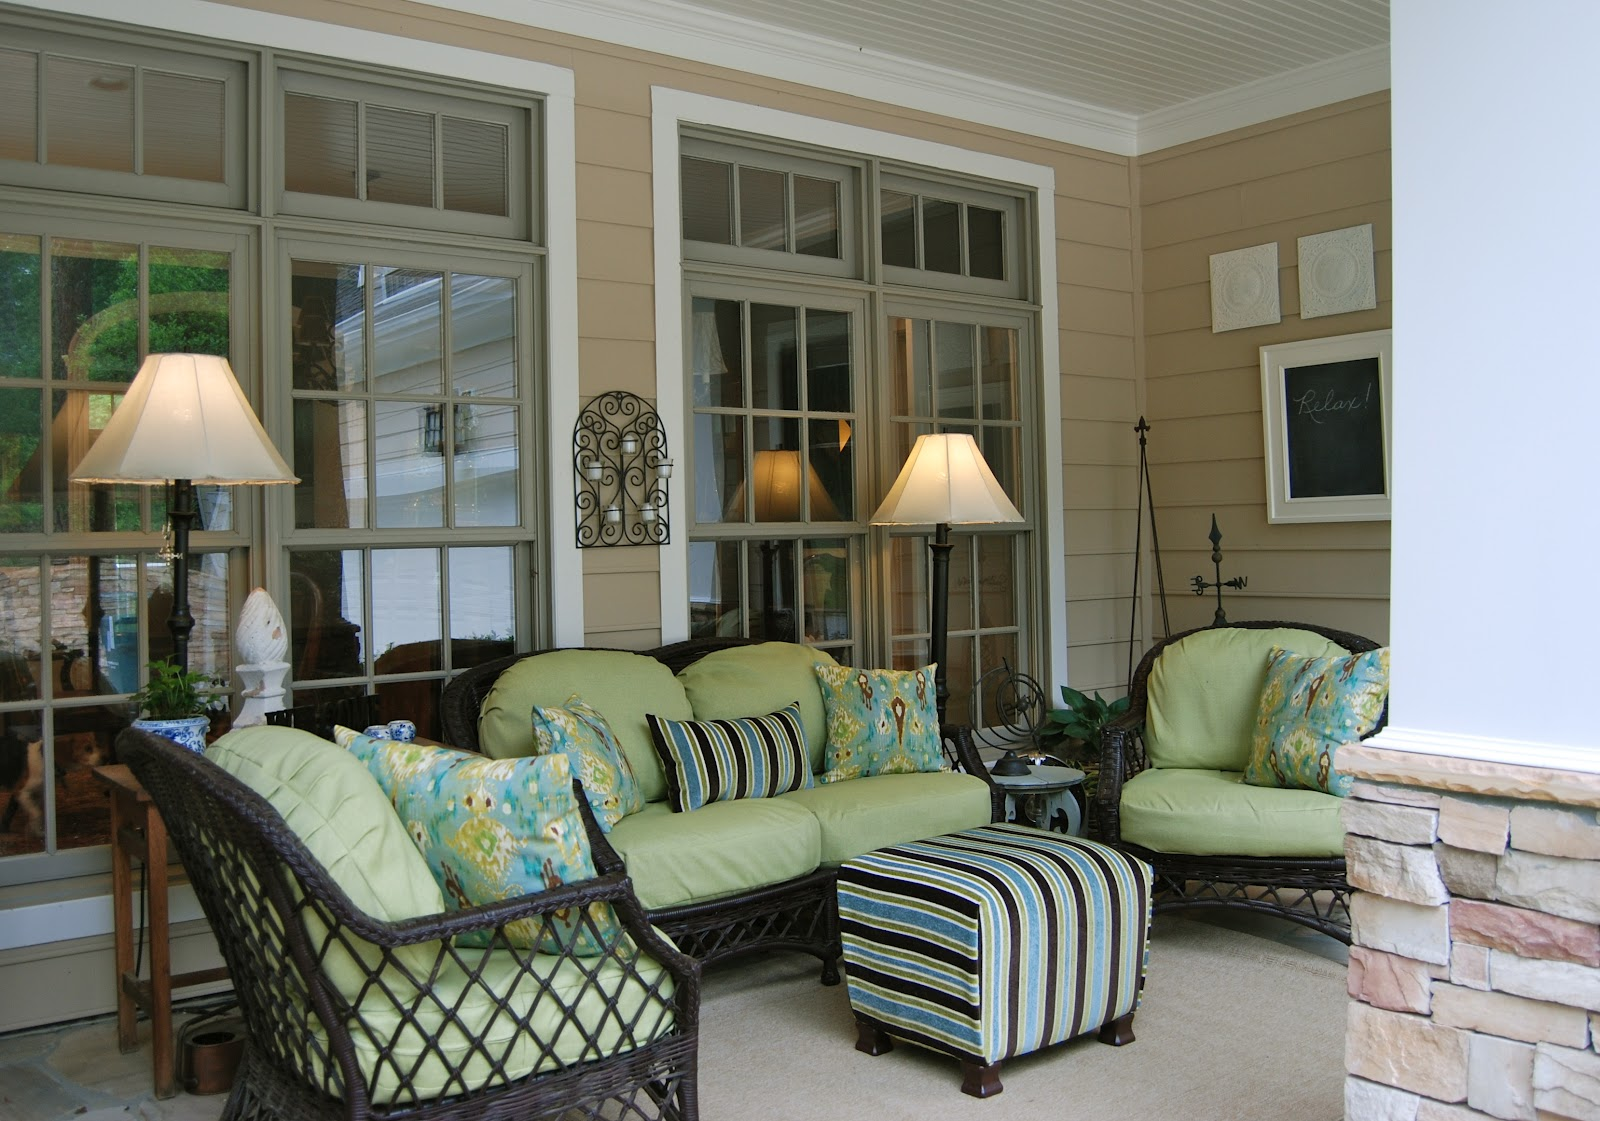 25 inspiring porch design ideas for your home for Patio deck decorating ideas